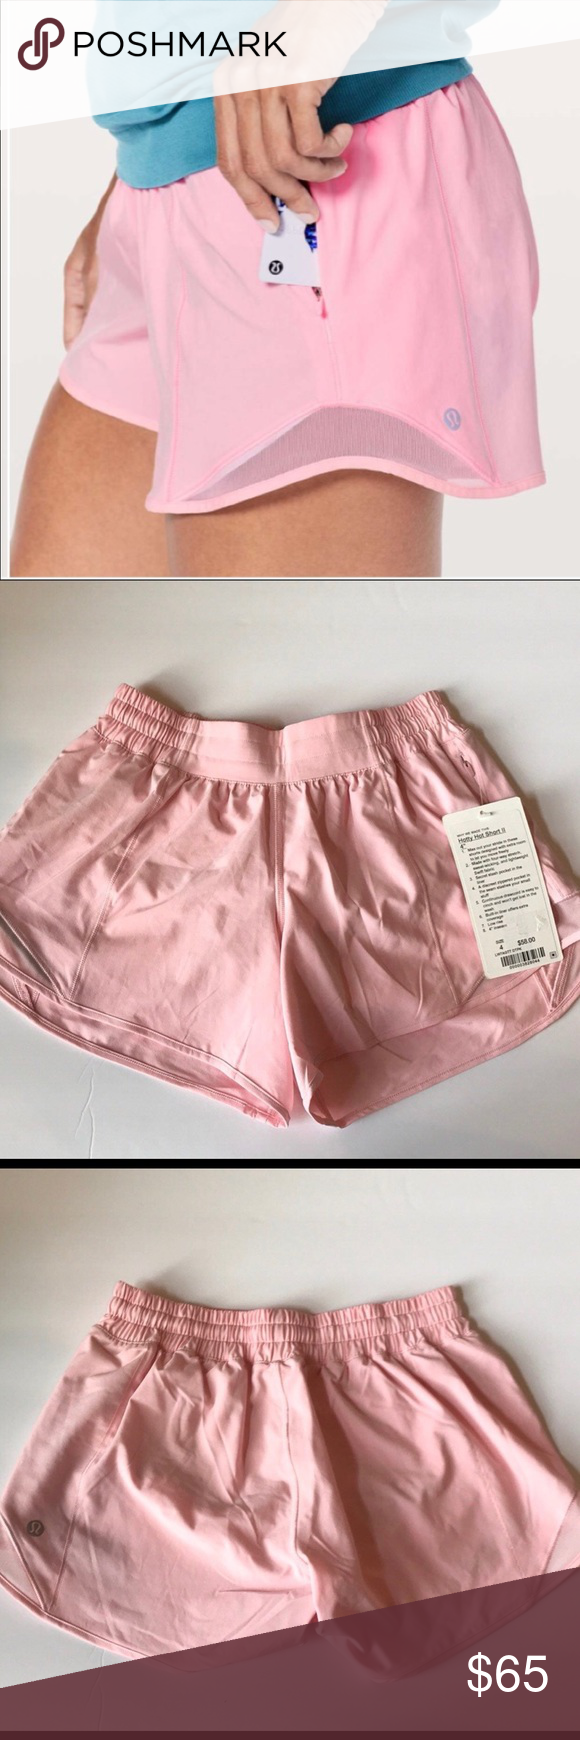 Make An Offer New Miami Pink Hotty Hot Shorts Hot Shorts Gym Shorts Womens Shorts